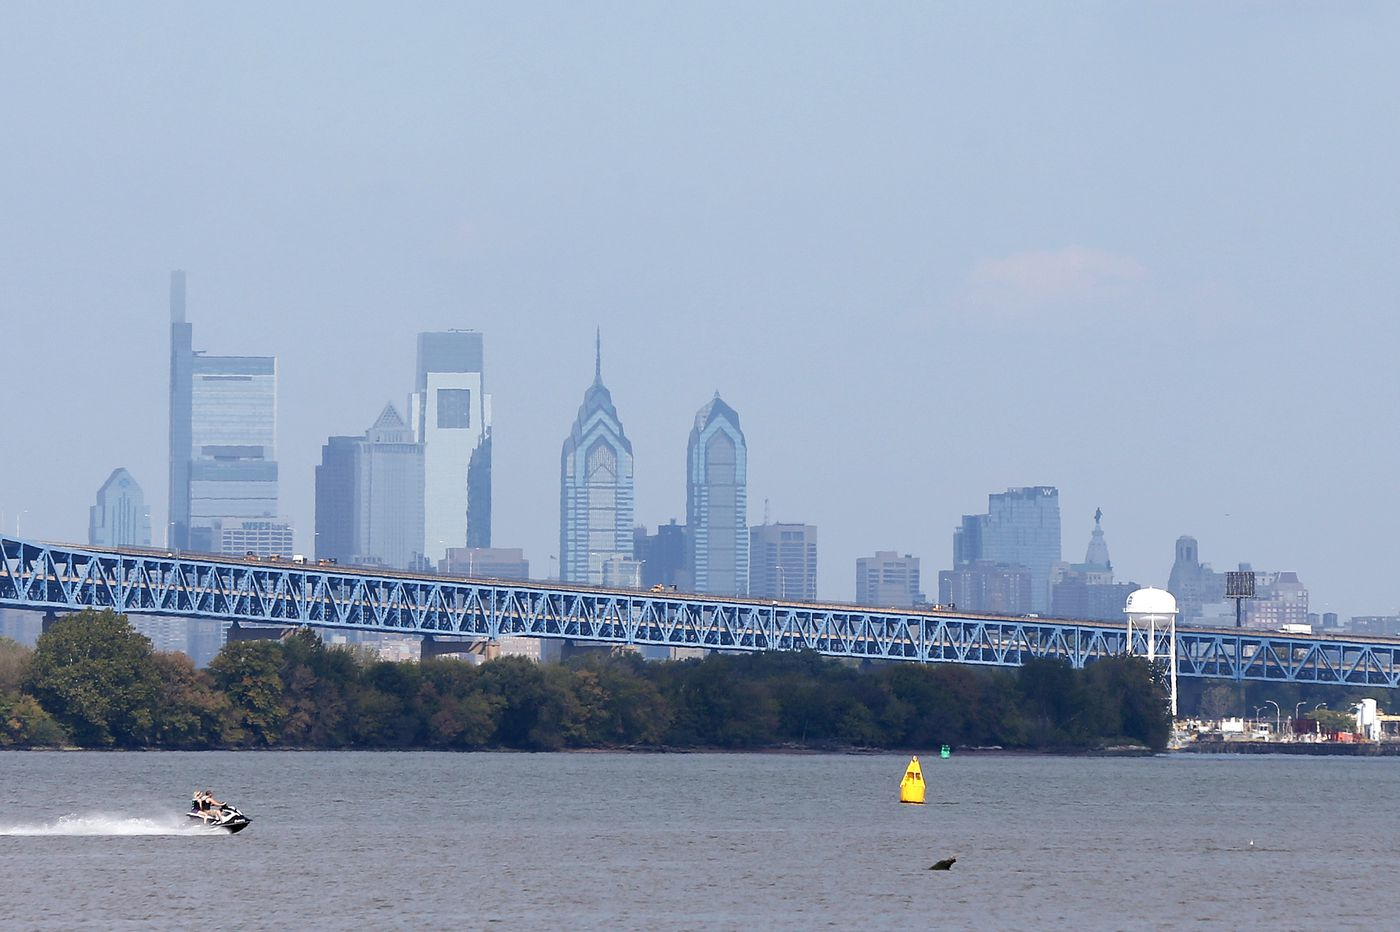 Philadelphia temperature tops 90 on an October day for first time in 78 years